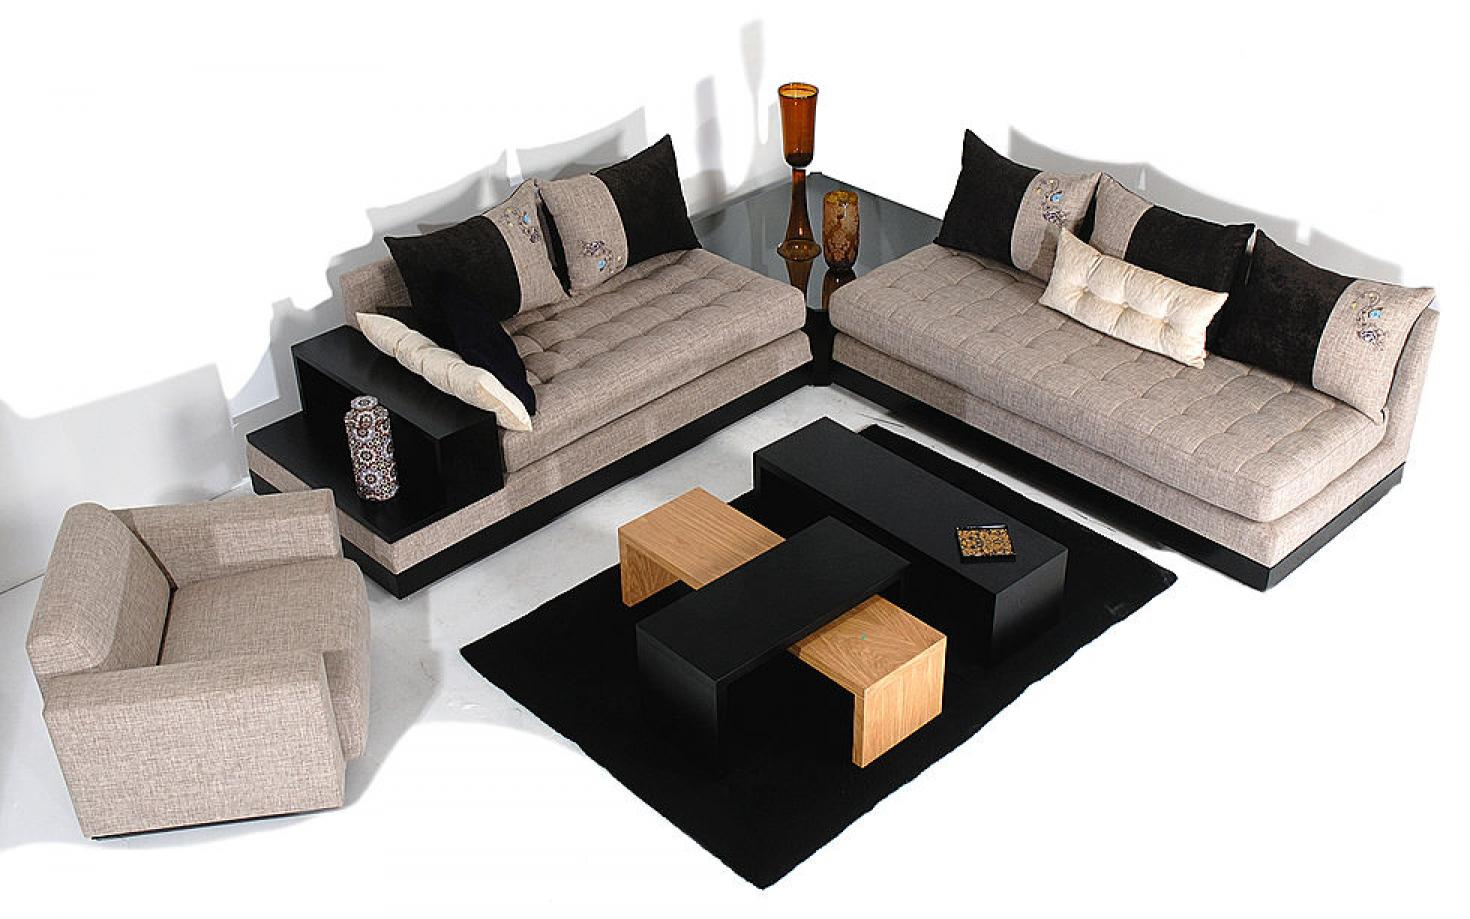 canap moderne de salon marocain et fauteuil d cor salon marocain. Black Bedroom Furniture Sets. Home Design Ideas